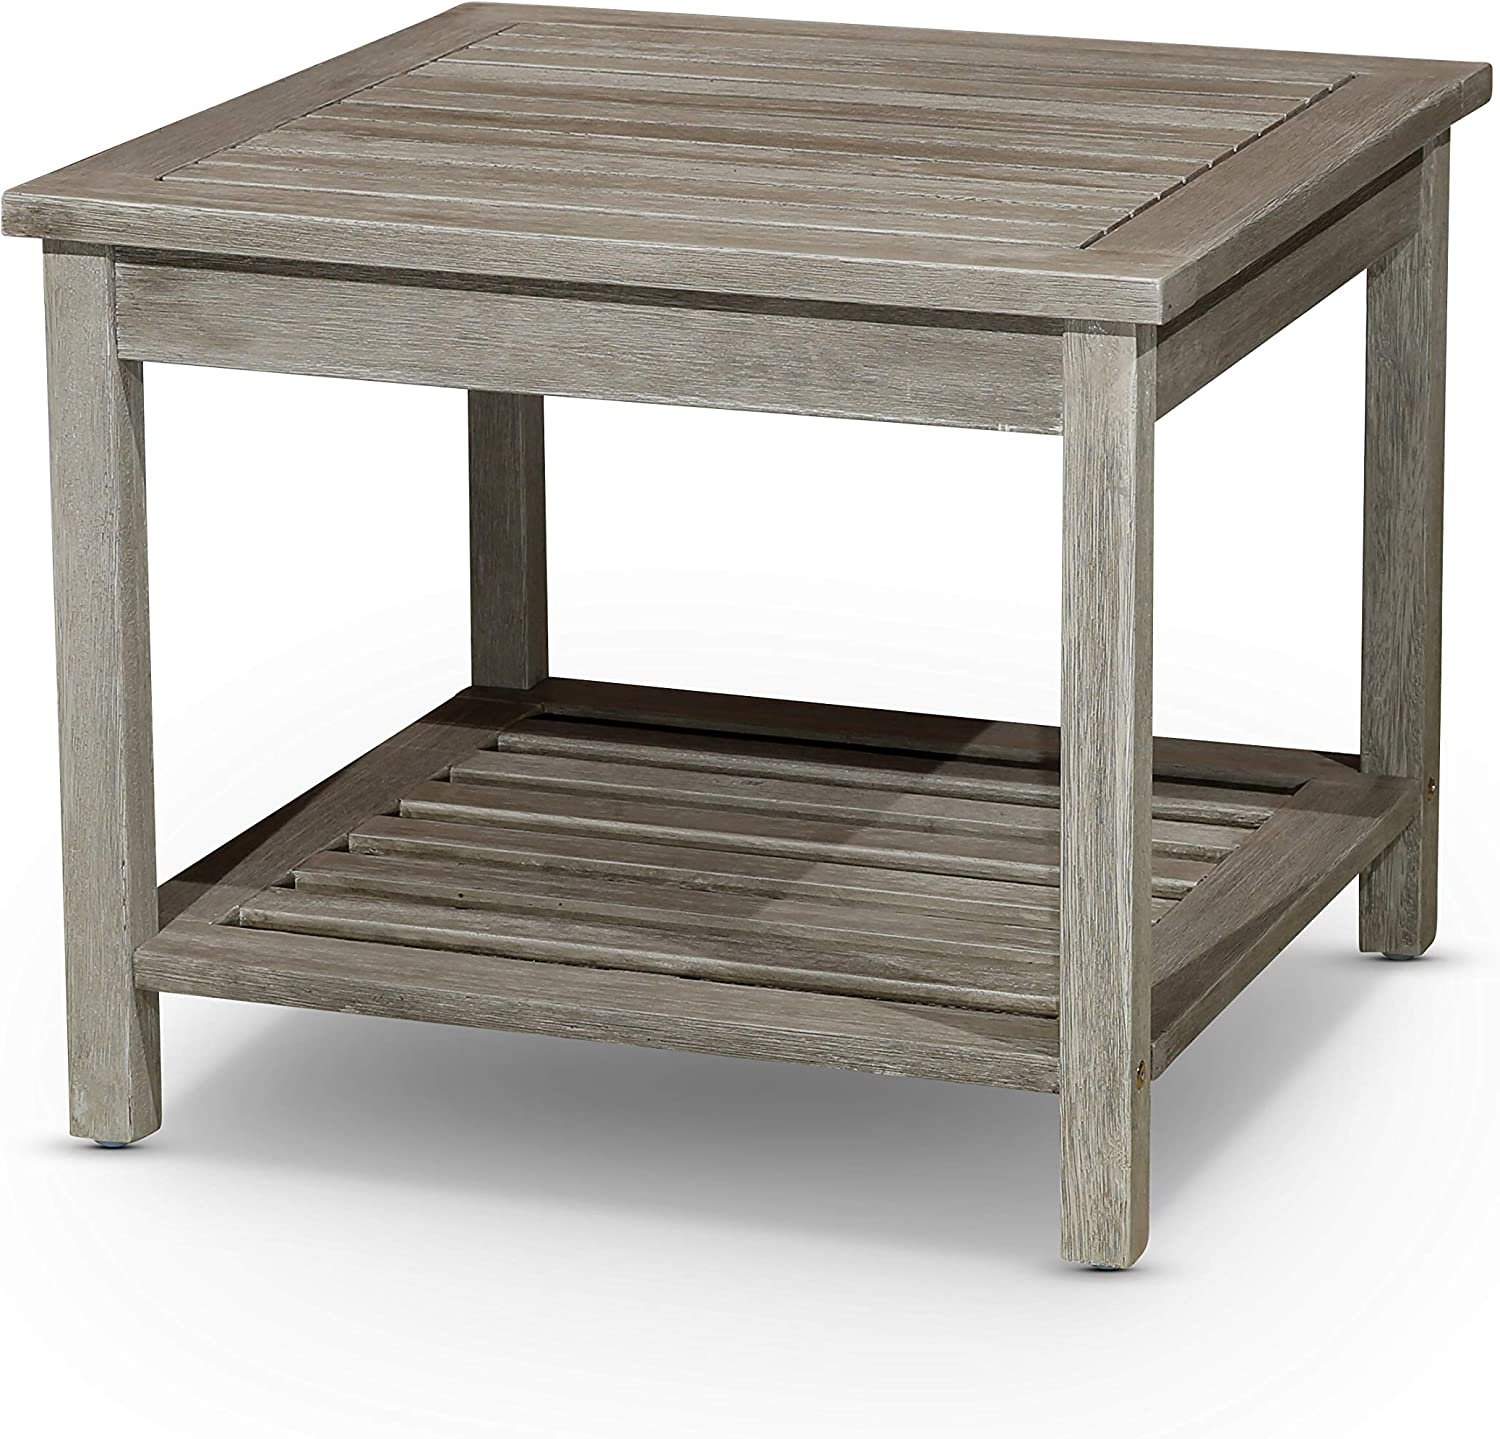 DTY Outdoor Living Longs Peak Eucalyptus Two Shelf Side Table -Driftwood Gray